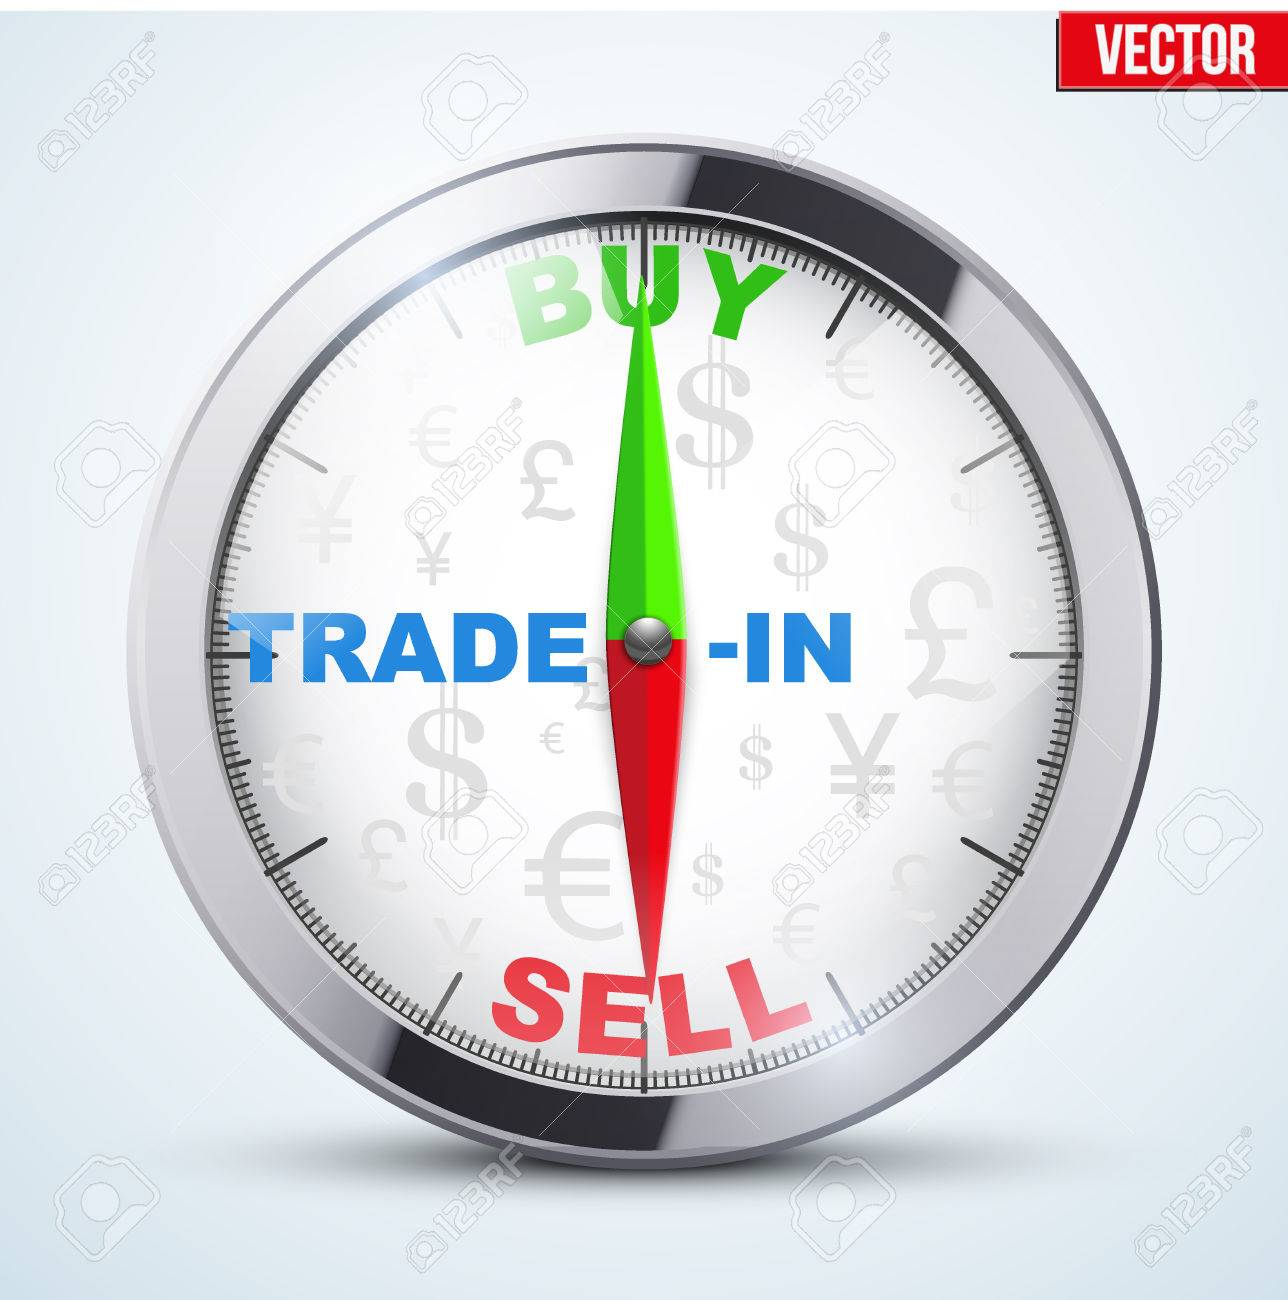 Compass for forex trader symbol of time to trading buy or sell compass for forex trader symbol of time to trading buy or sell editable biocorpaavc Image collections